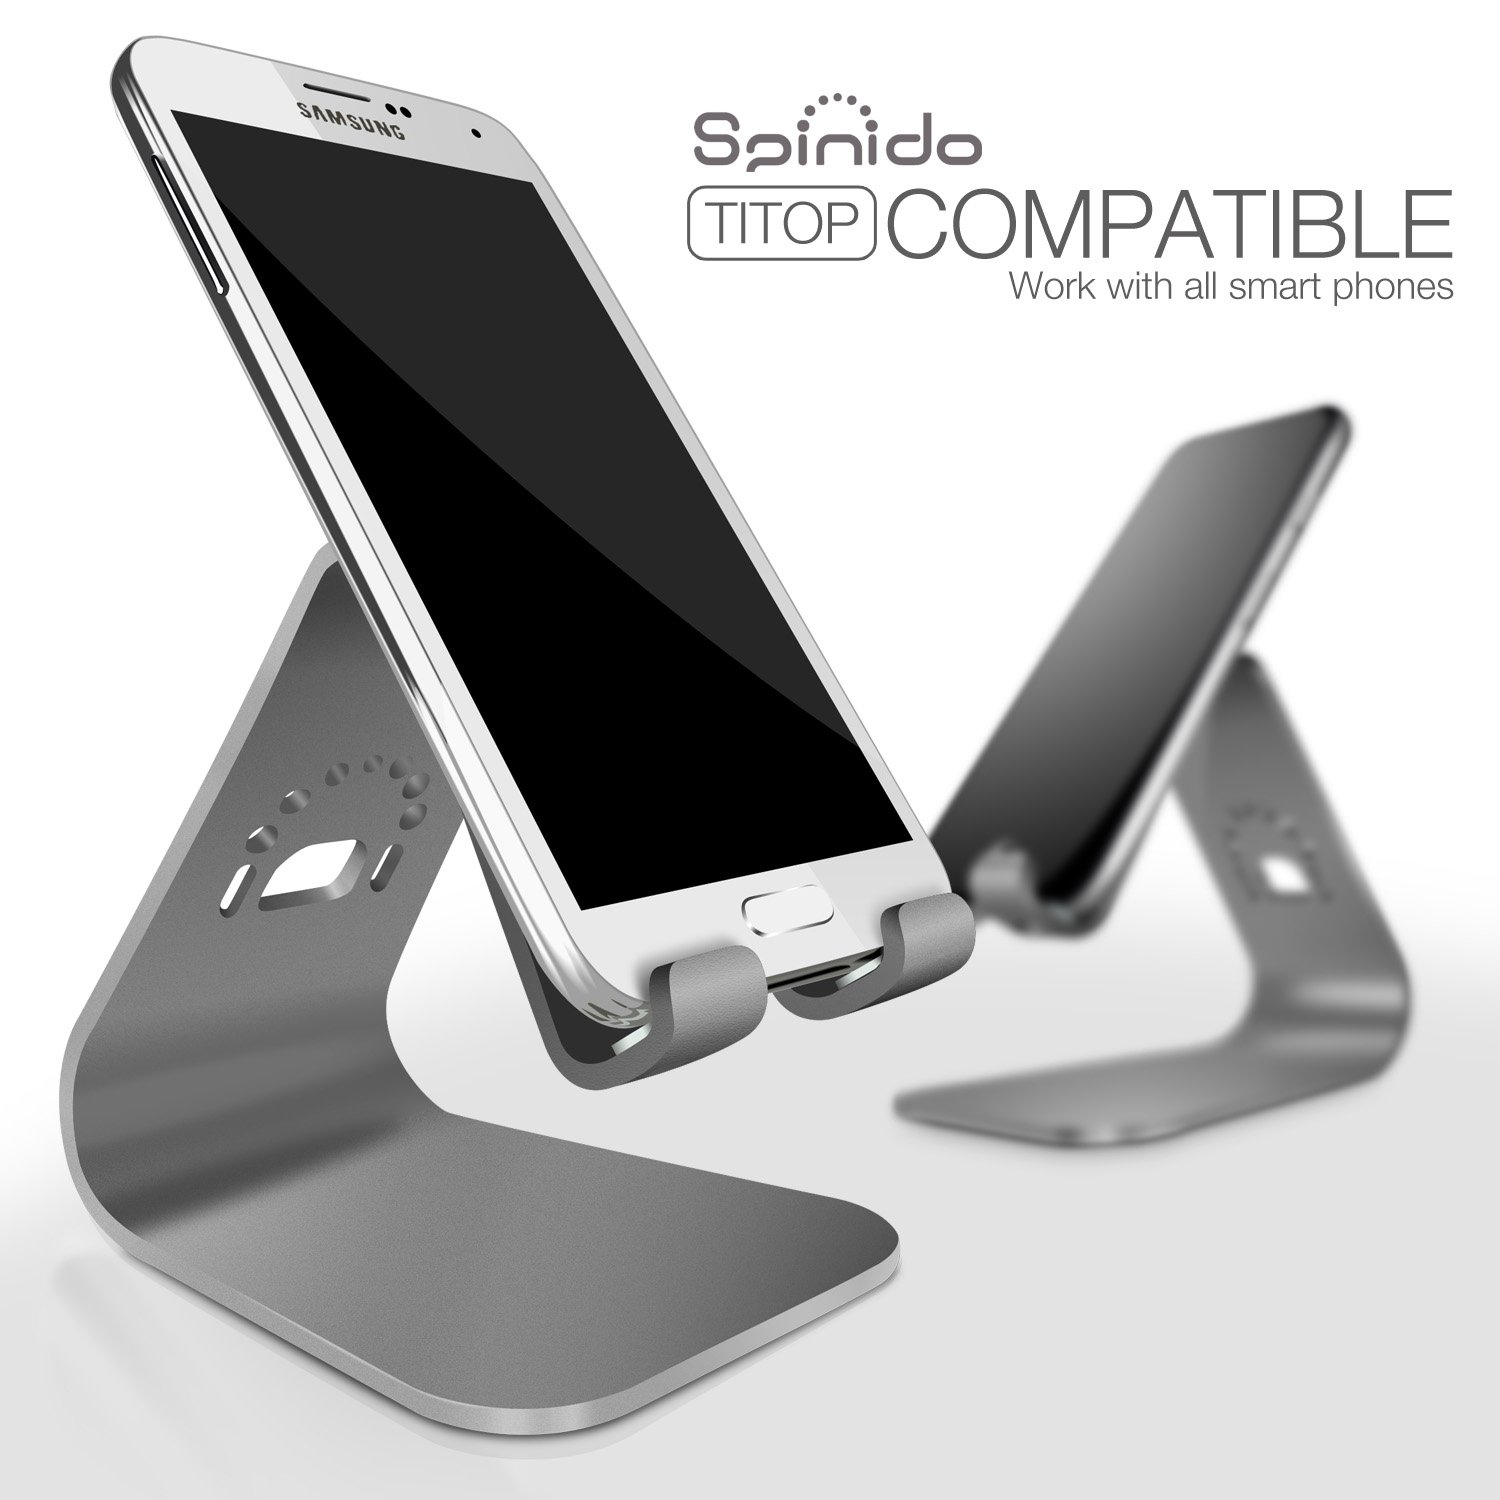 spinido phone stand dock holder for iphone 7 plus 7